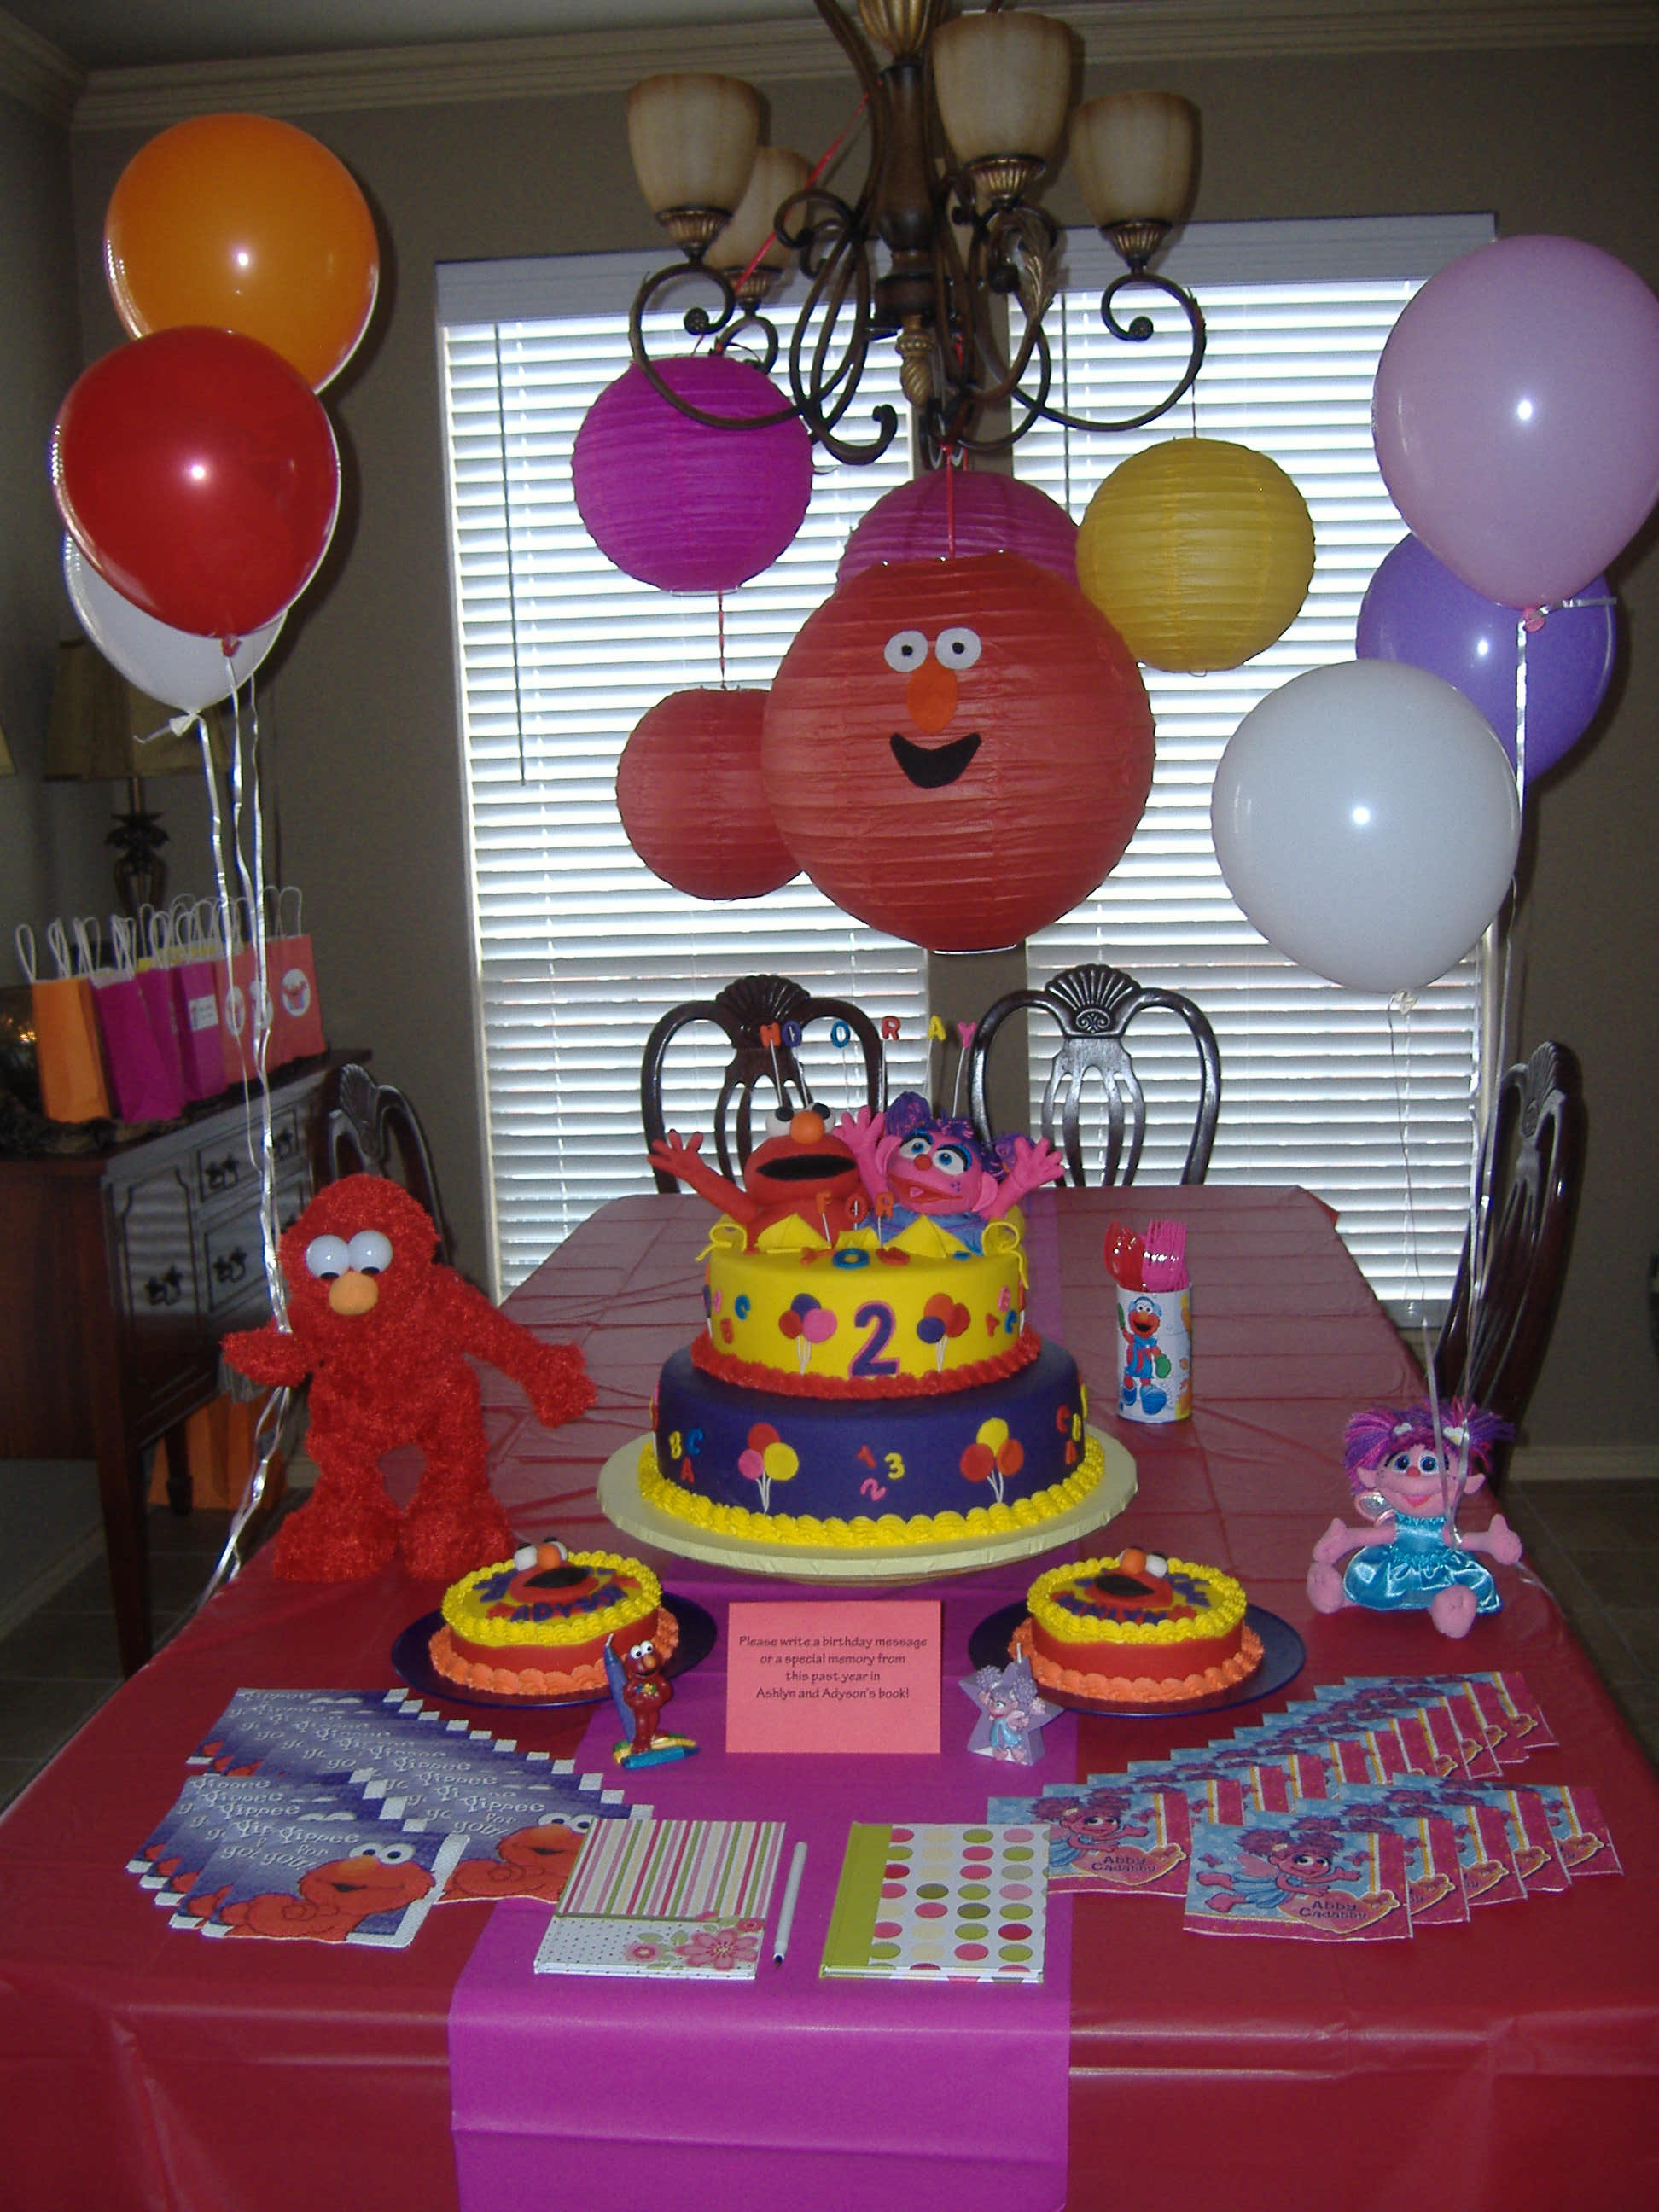 Best ideas about Elmo Birthday Decorations . Save or Pin Elmo and Abby Party Now.